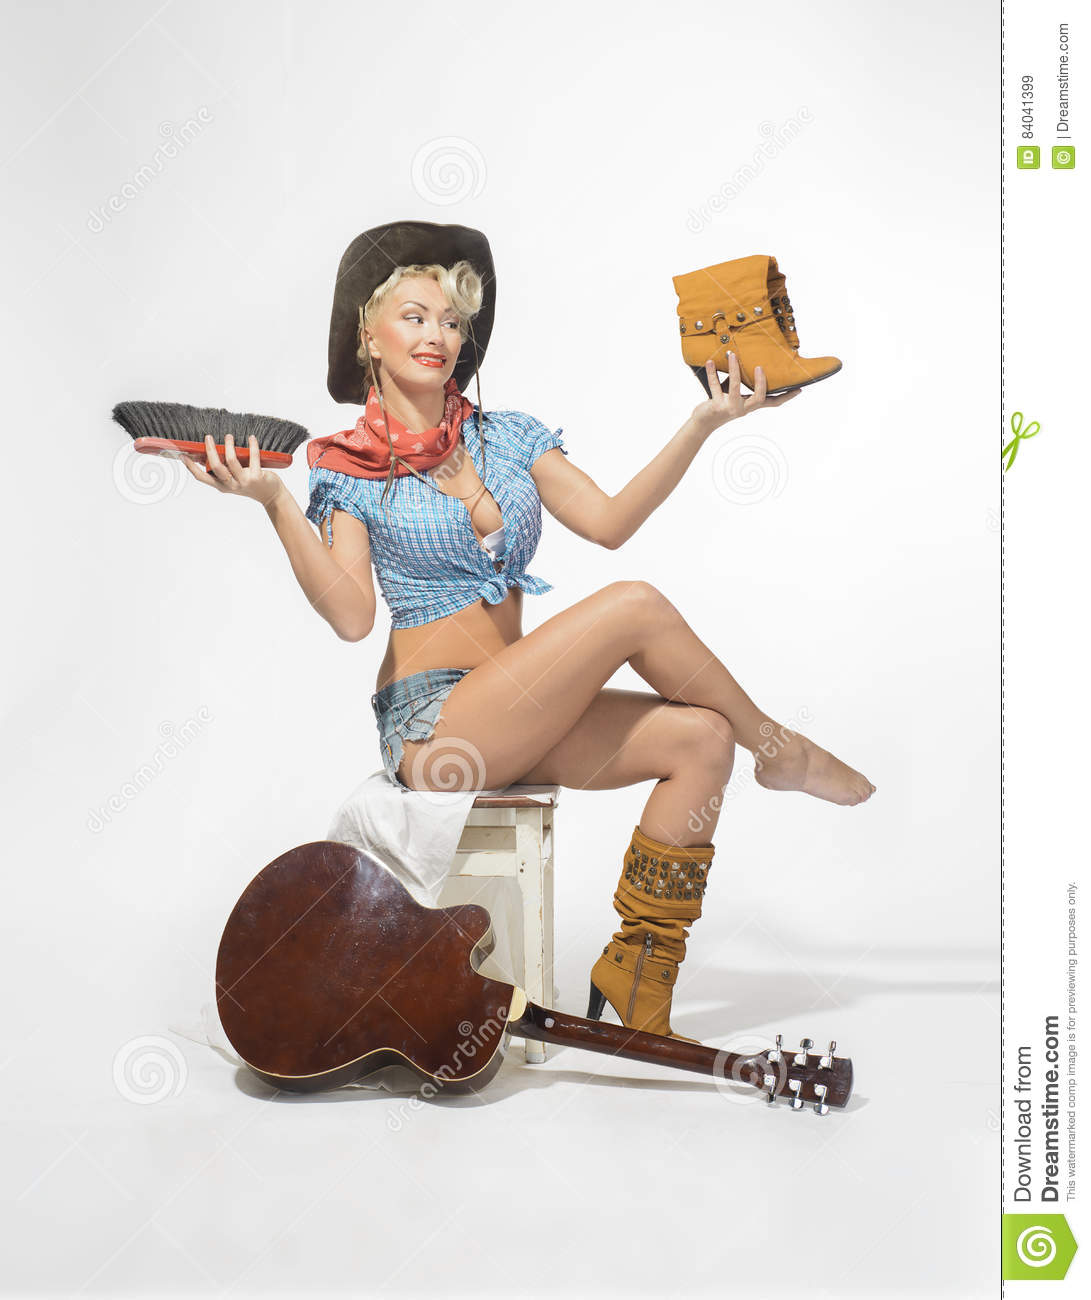 super sexy rodeo cowgirl in shorts jeans  boots royalty redneck clipart free black and white redneck clip art free